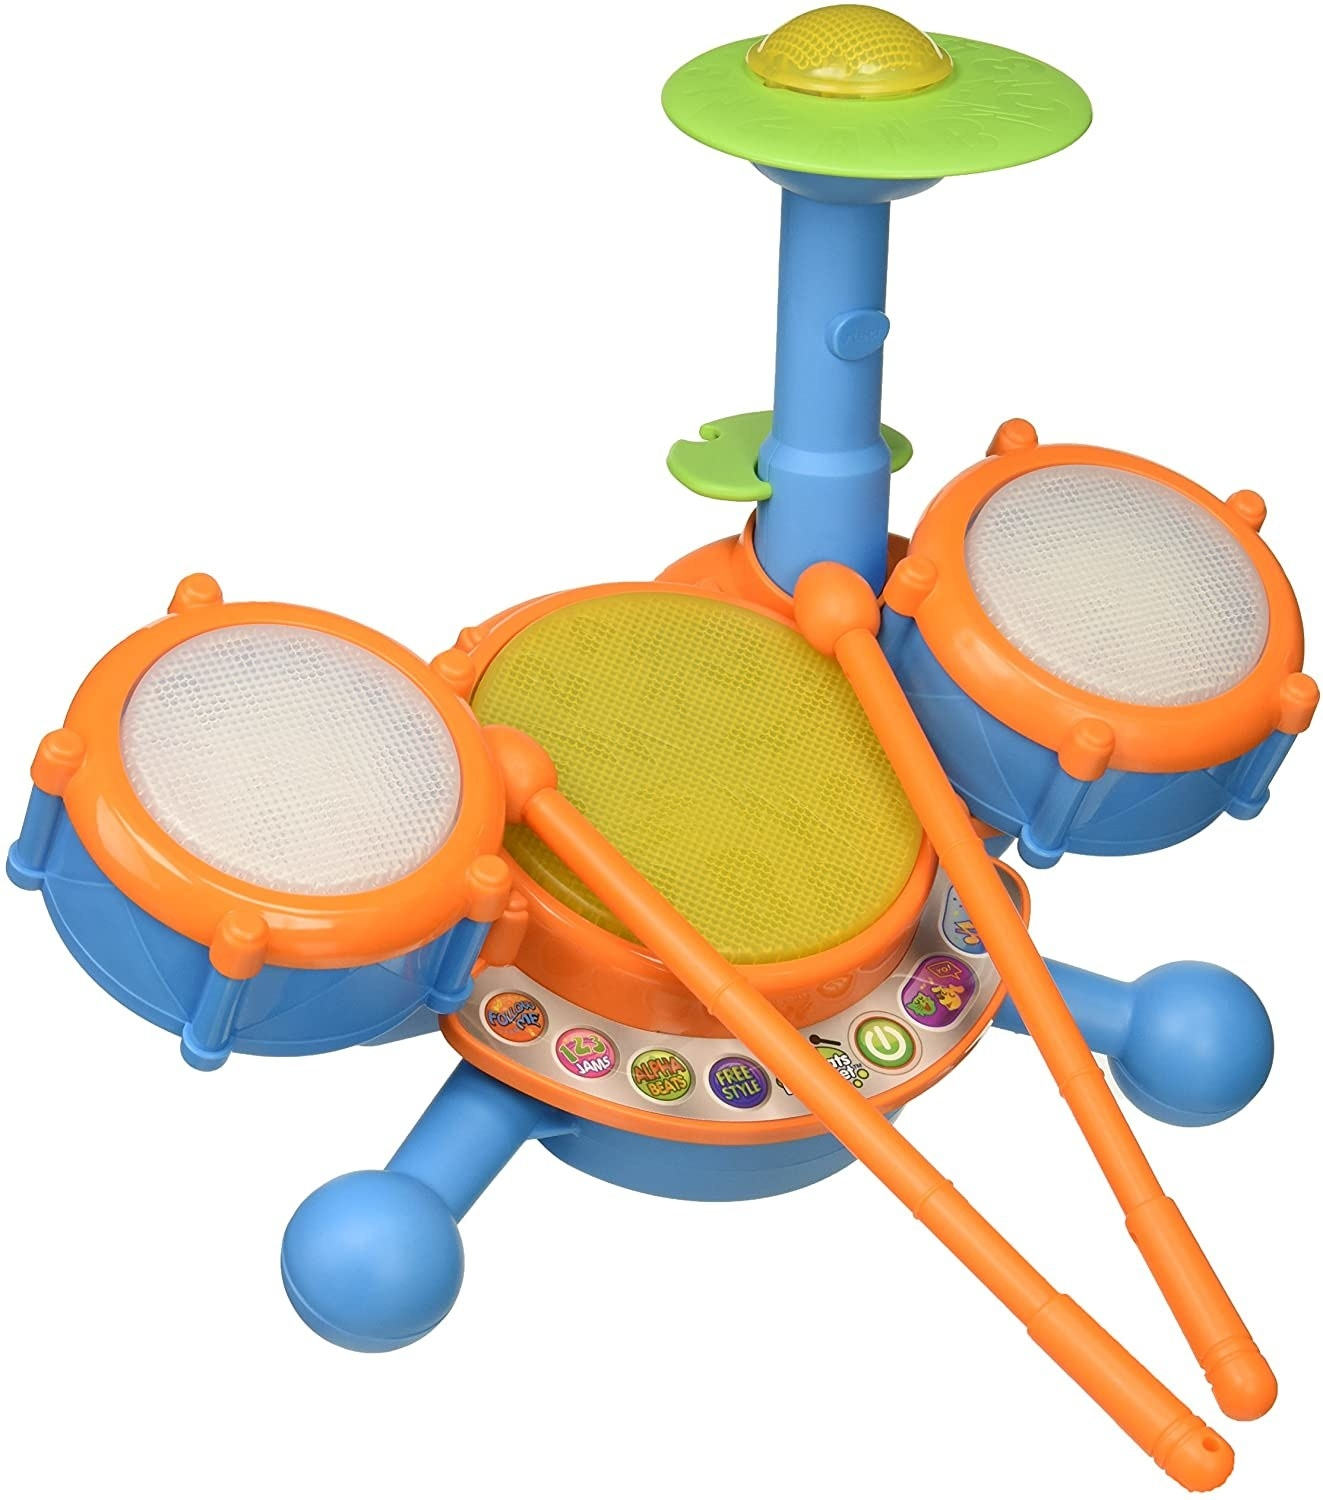 A blue and orange plastic electronic drum kit with drum sticks